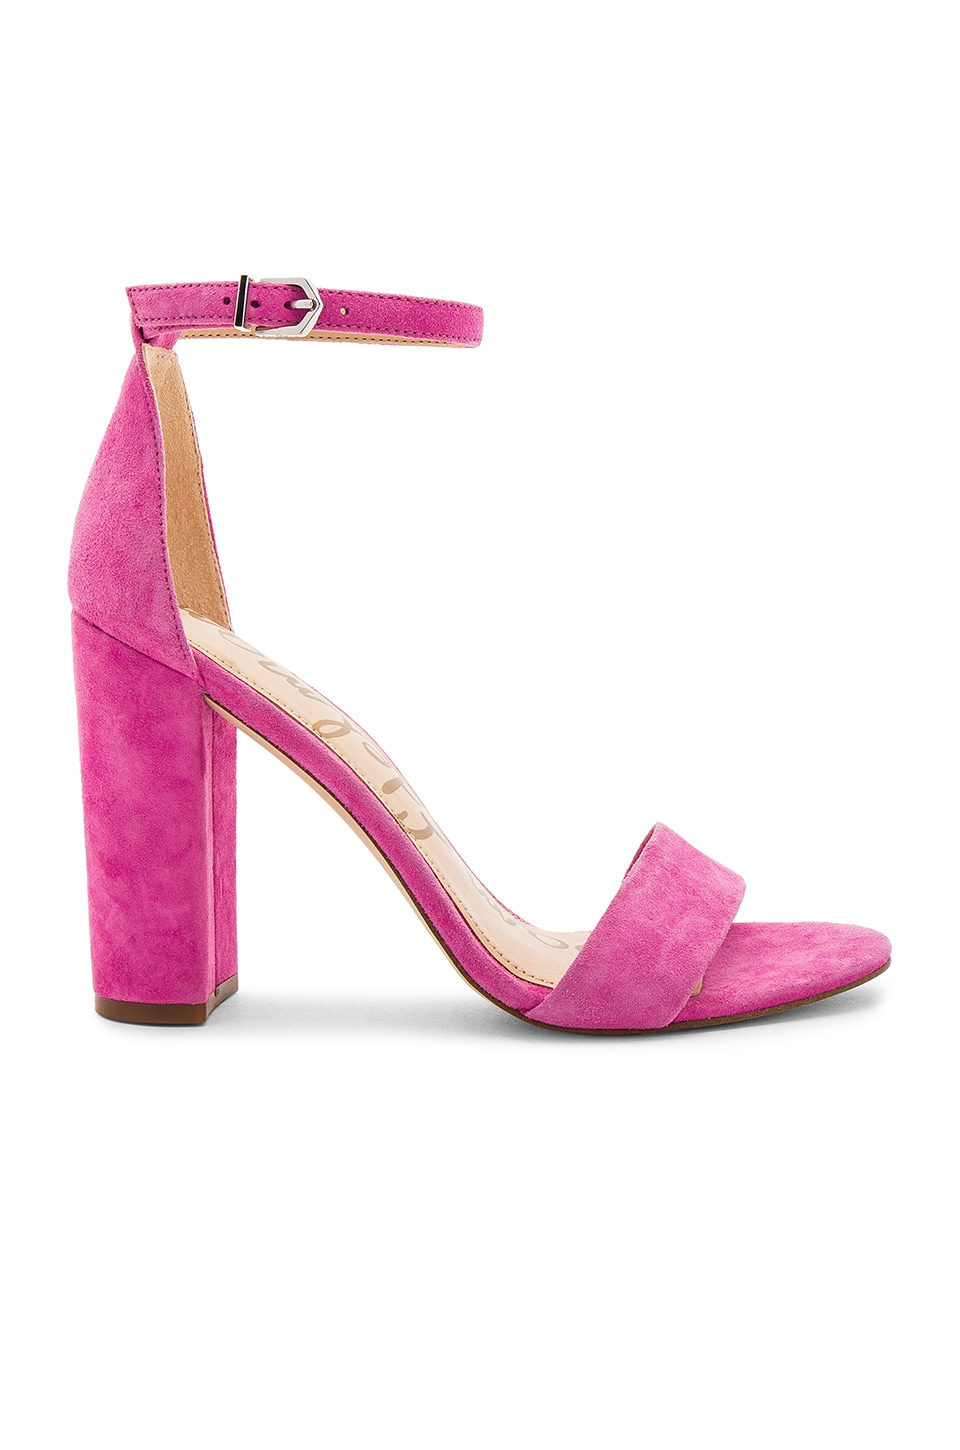 02a6393254d0 Sam Edelman Yaro Heel in Hot Pink